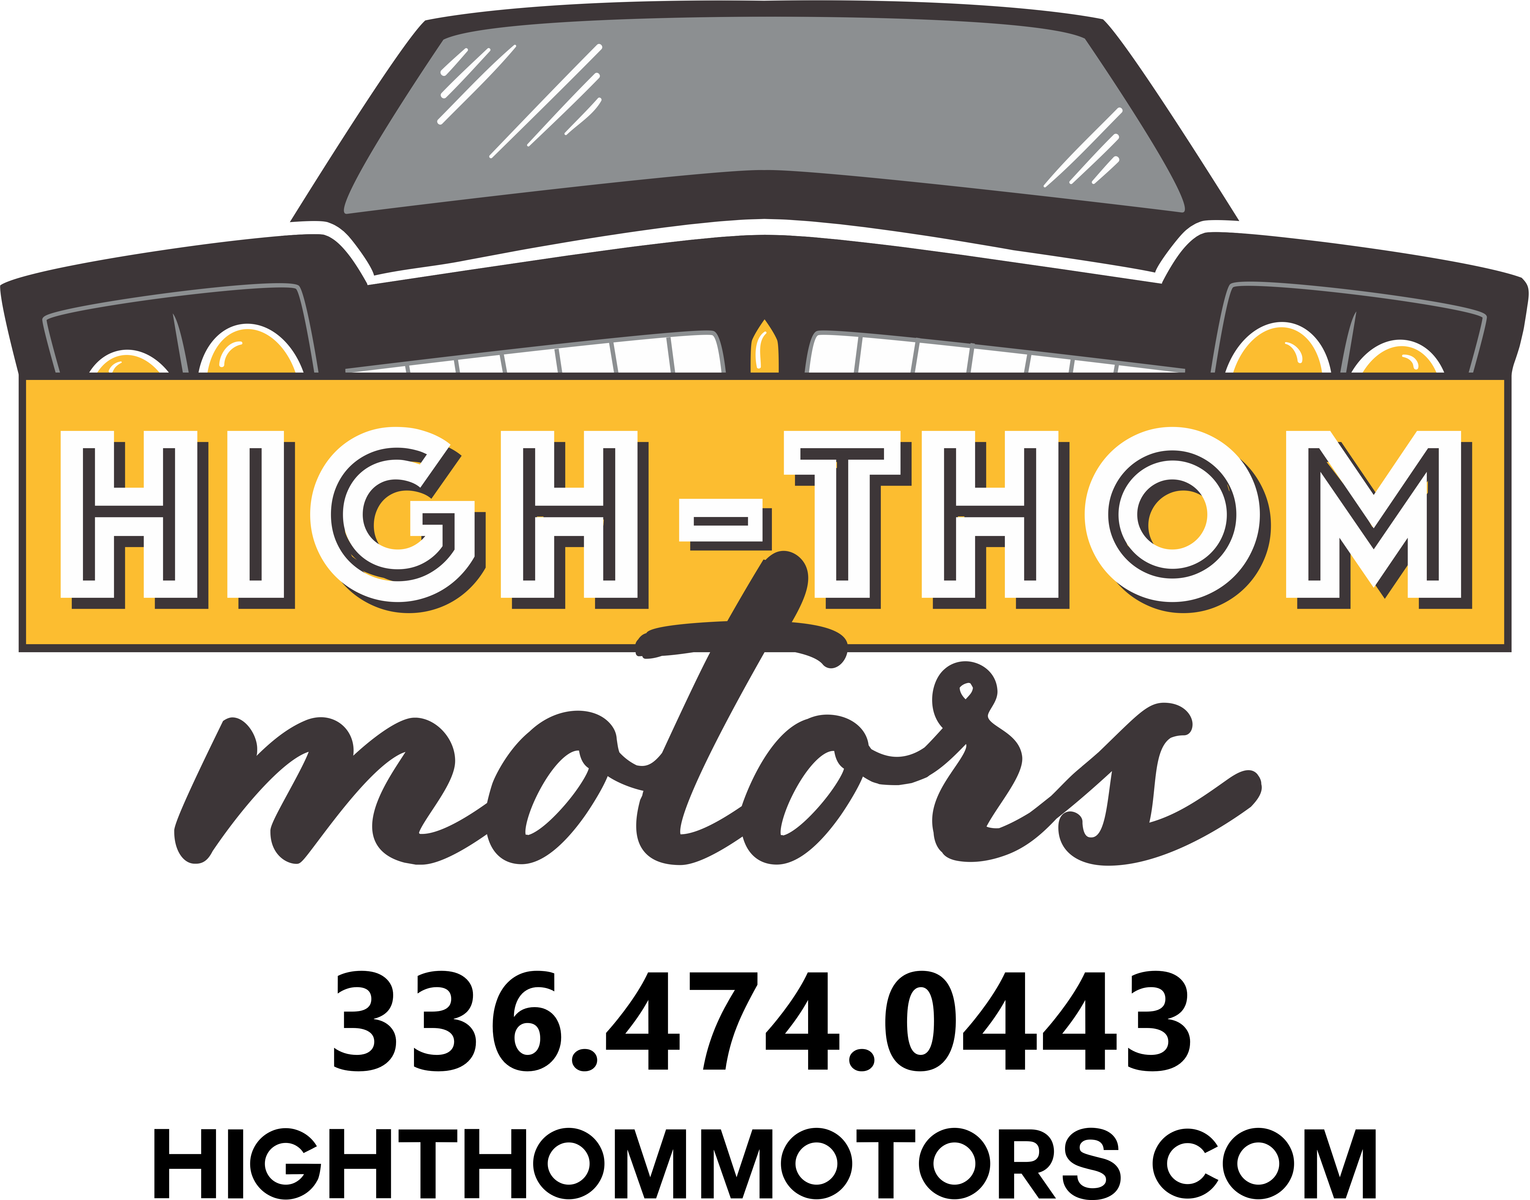 High thom motors llc thomasville nc read consumer for Modern motors thomasville nc